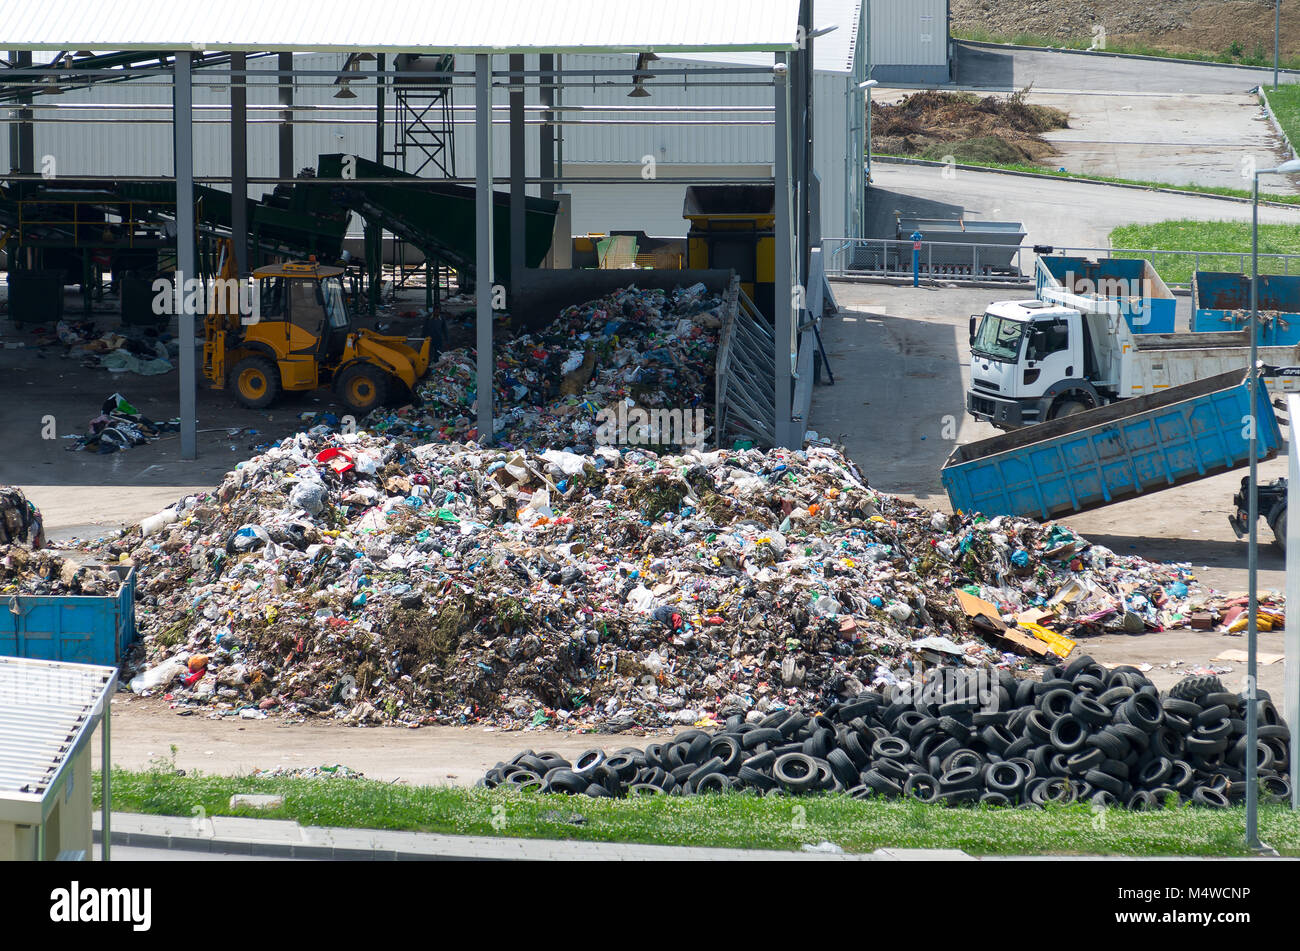 Urban landfill built under the program Environment with a grant from the European Union. Waste treatment plant depot. - Stock Image